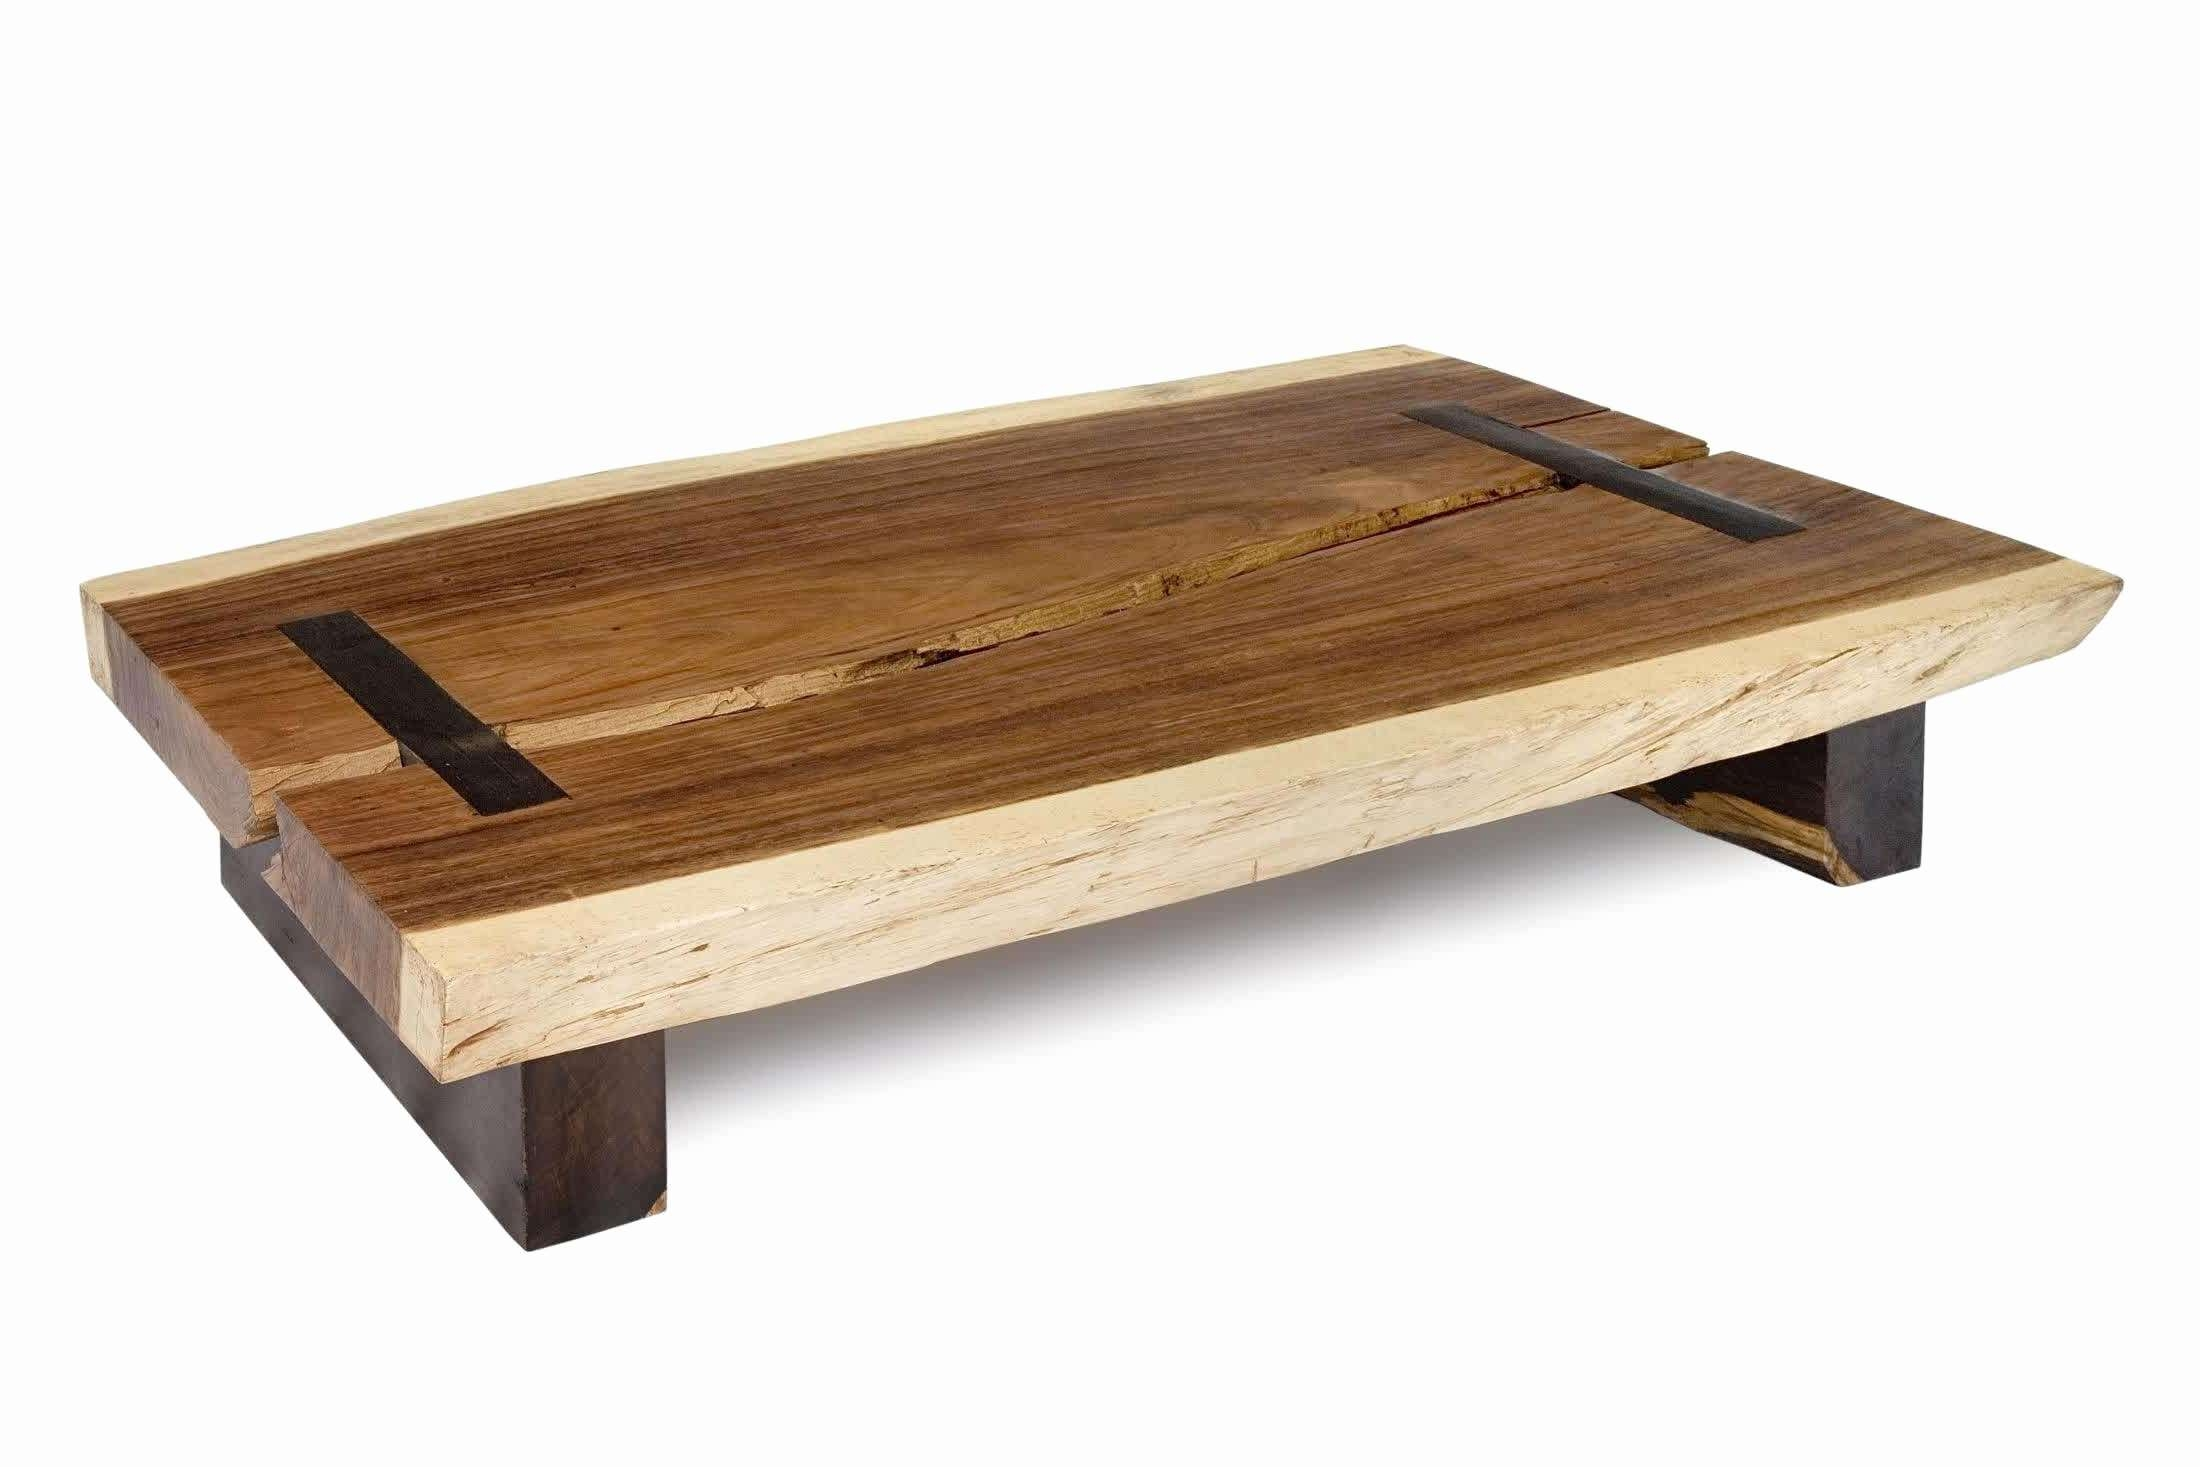 Living Room Tables Big Lots Luxury Coffee Table Amazing Solid Wood Intended For 2017 Large Solid Wood Coffee Tables (View 11 of 20)